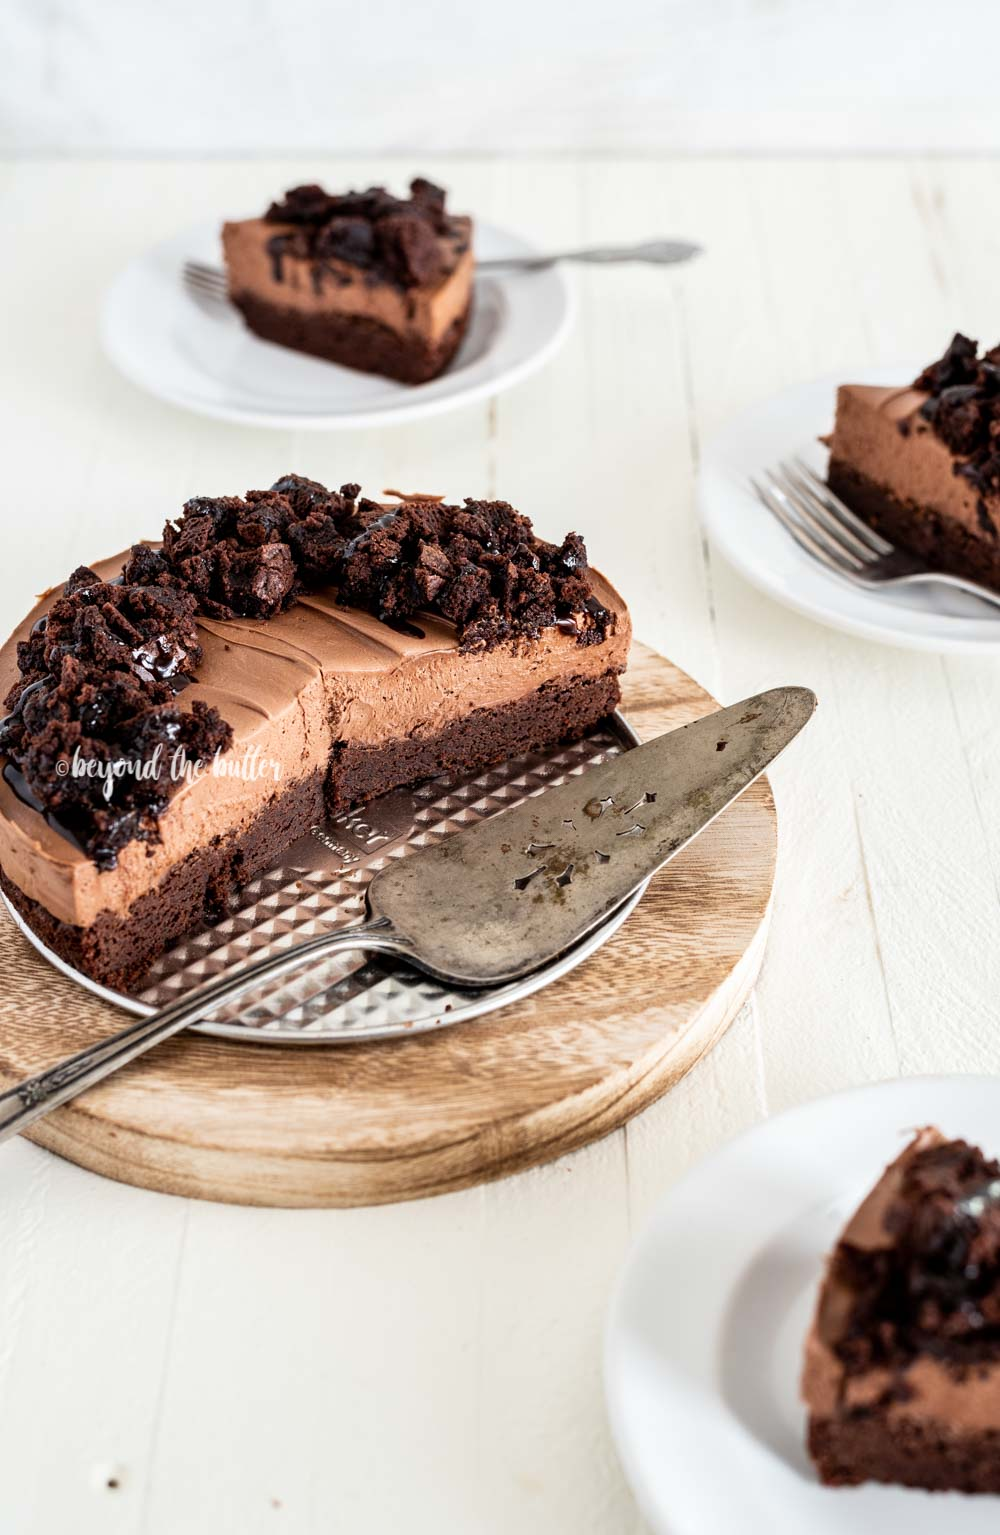 Chocolate Brownie Cheesecake recipe   All Images © Beyond the Butter, LLC